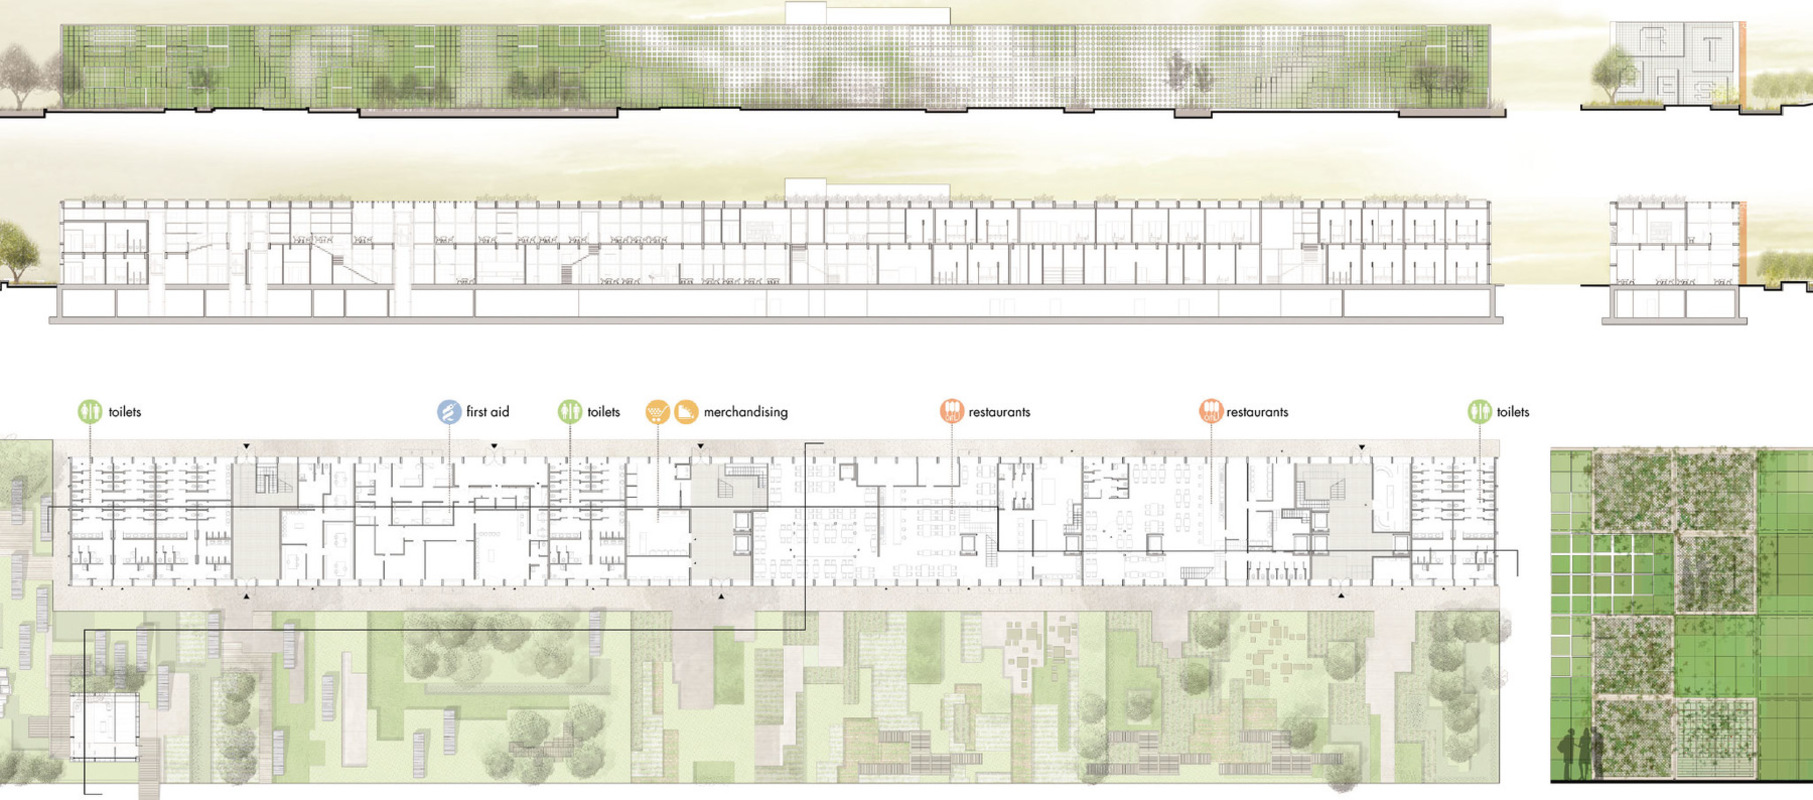 Tamandua - Plan and section of the service buildings